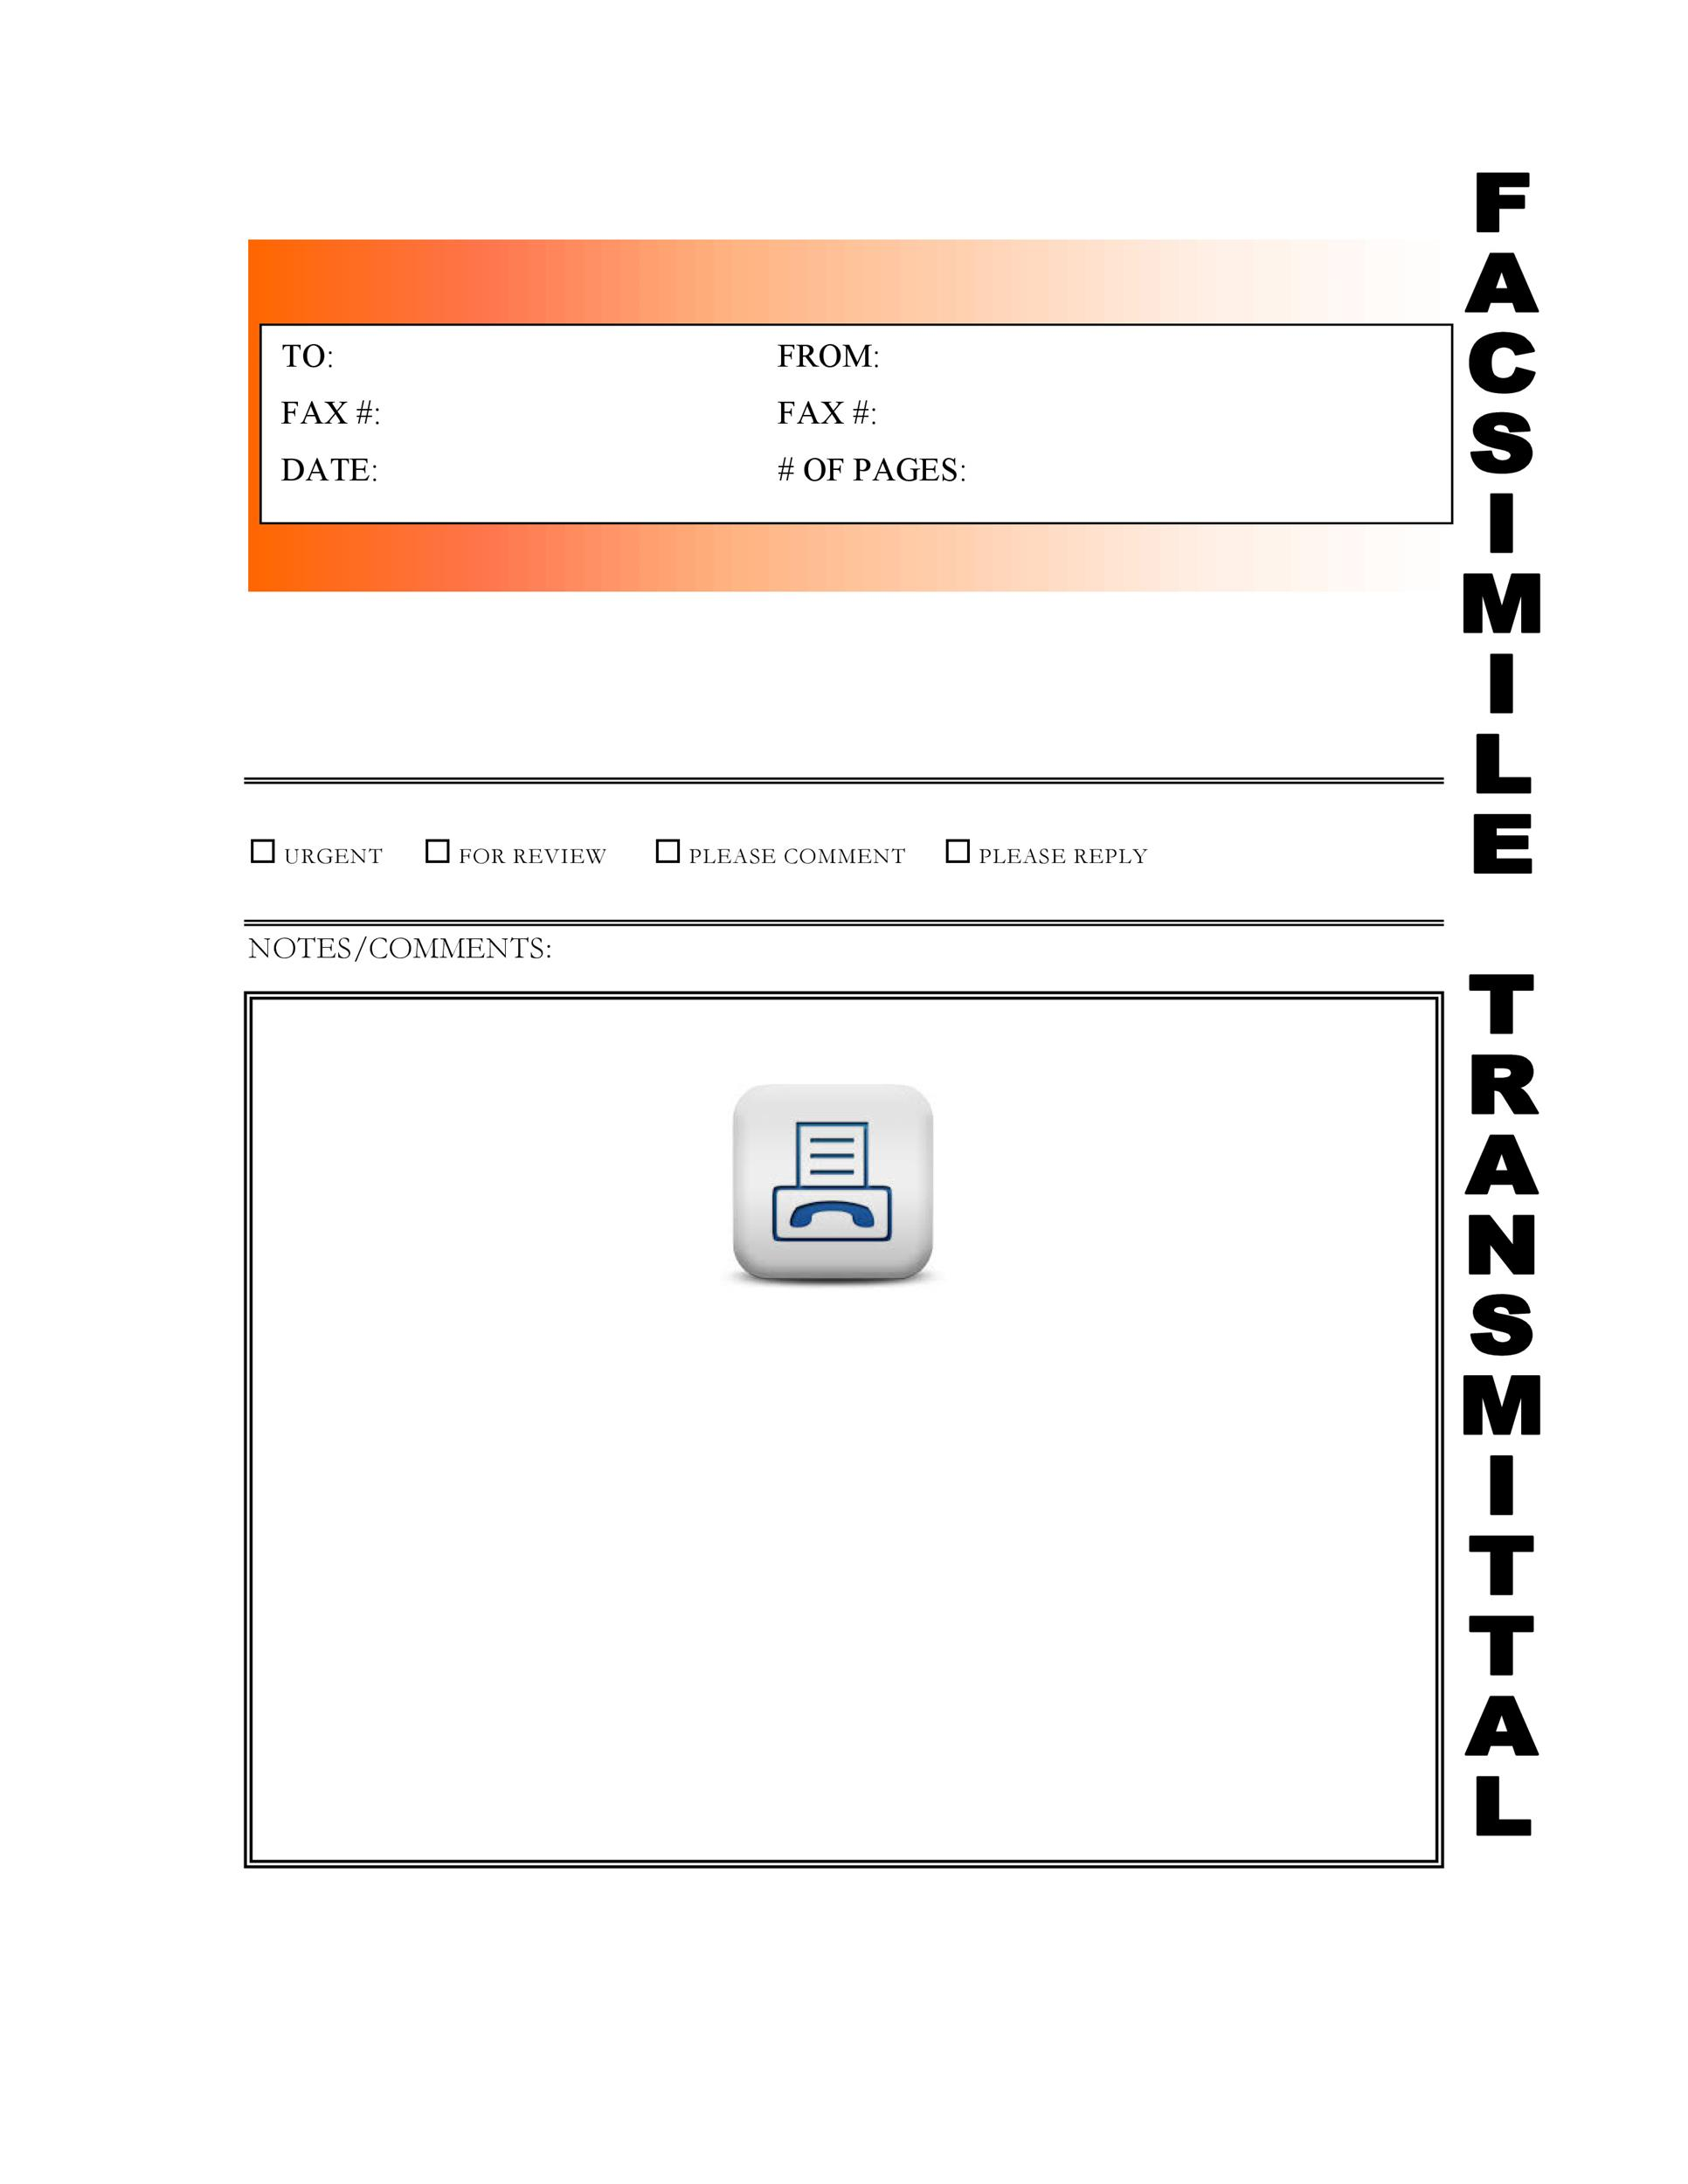 Free Fax Cover sheet Template 33